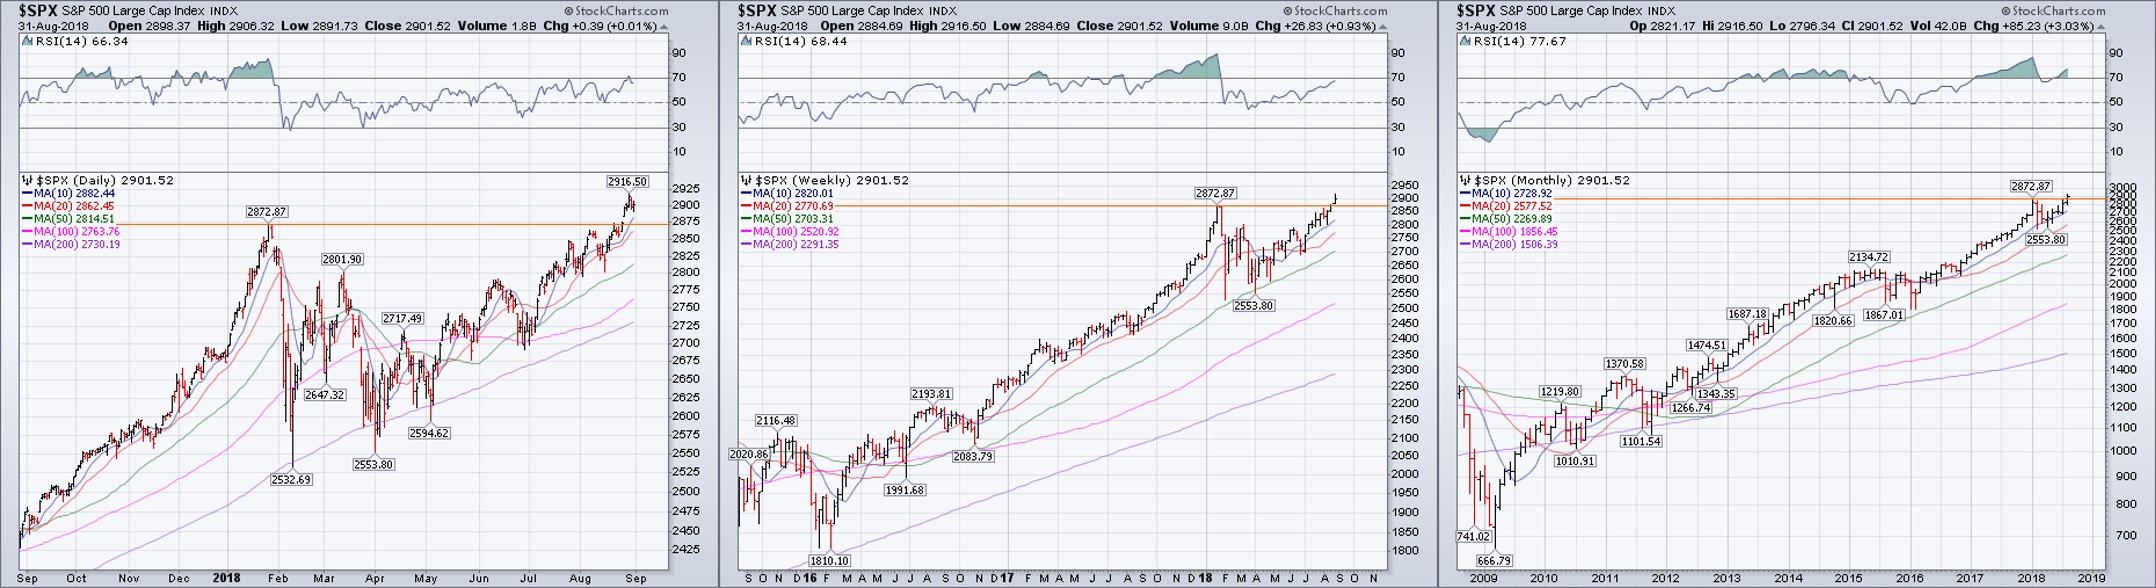 Daily, weekly, and monthly charts of the S&P 500 all exemplify the characteristics of a primary uptrend.